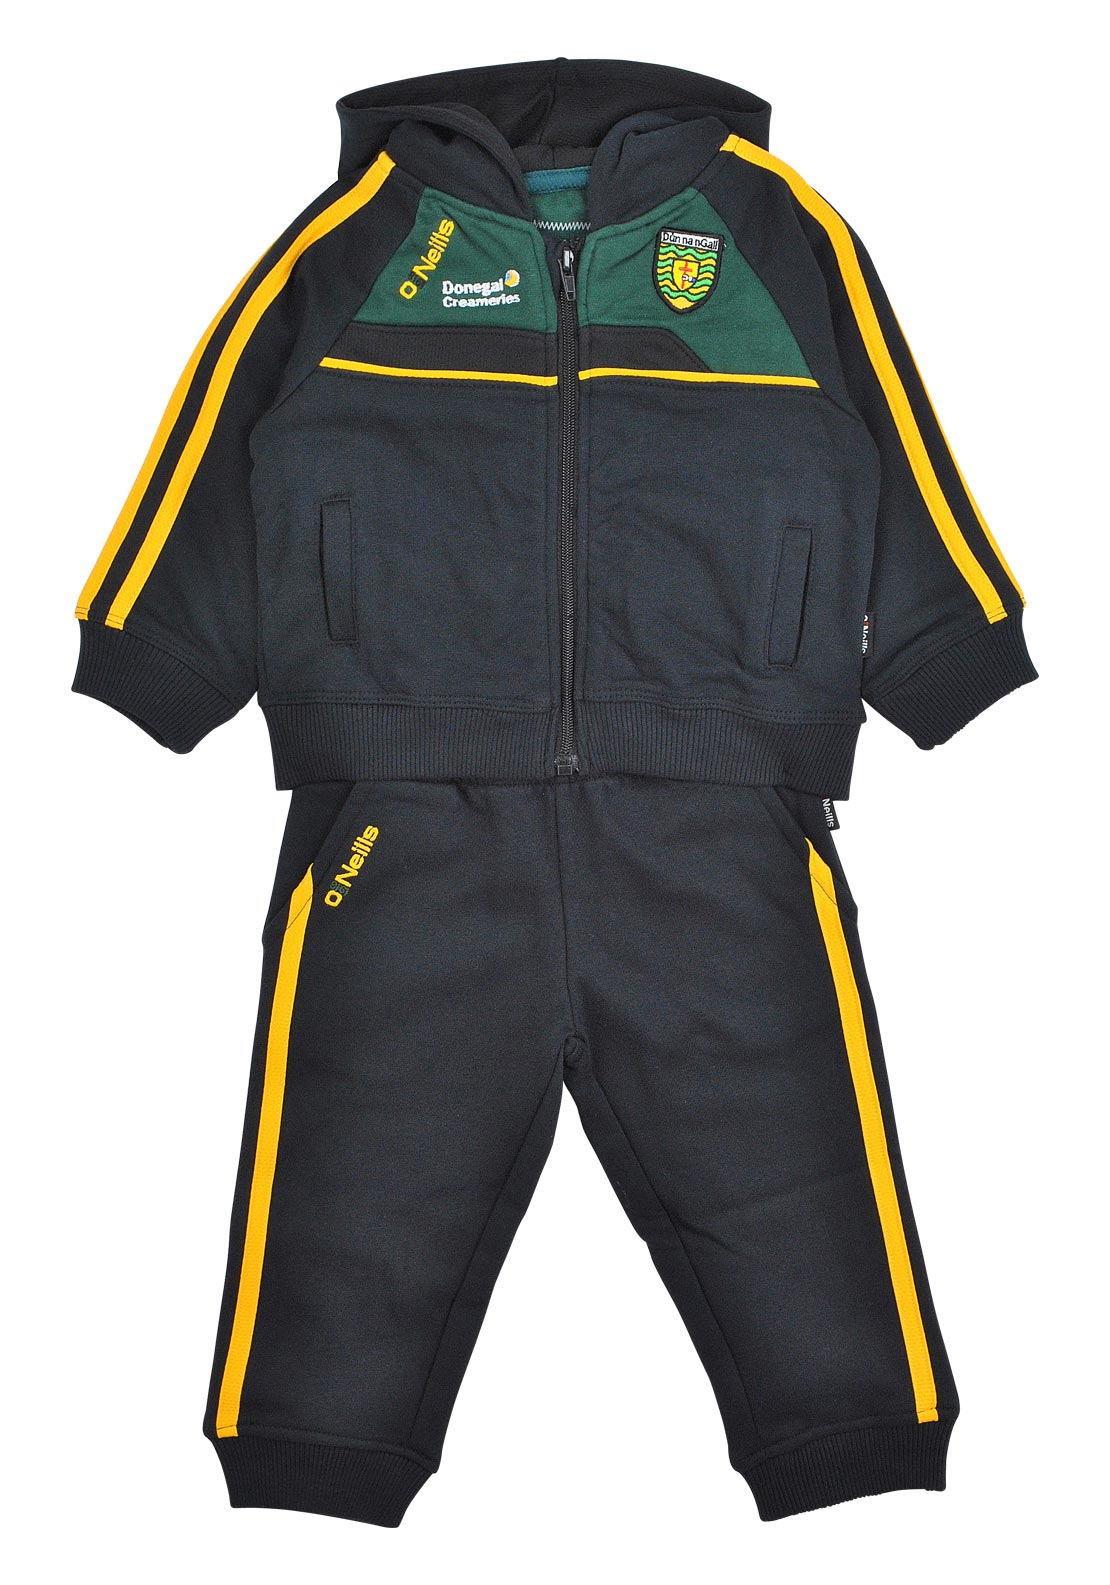 O' Neill's Boys Baby Boy GAA Errigal Donegal Tracksuit, Black